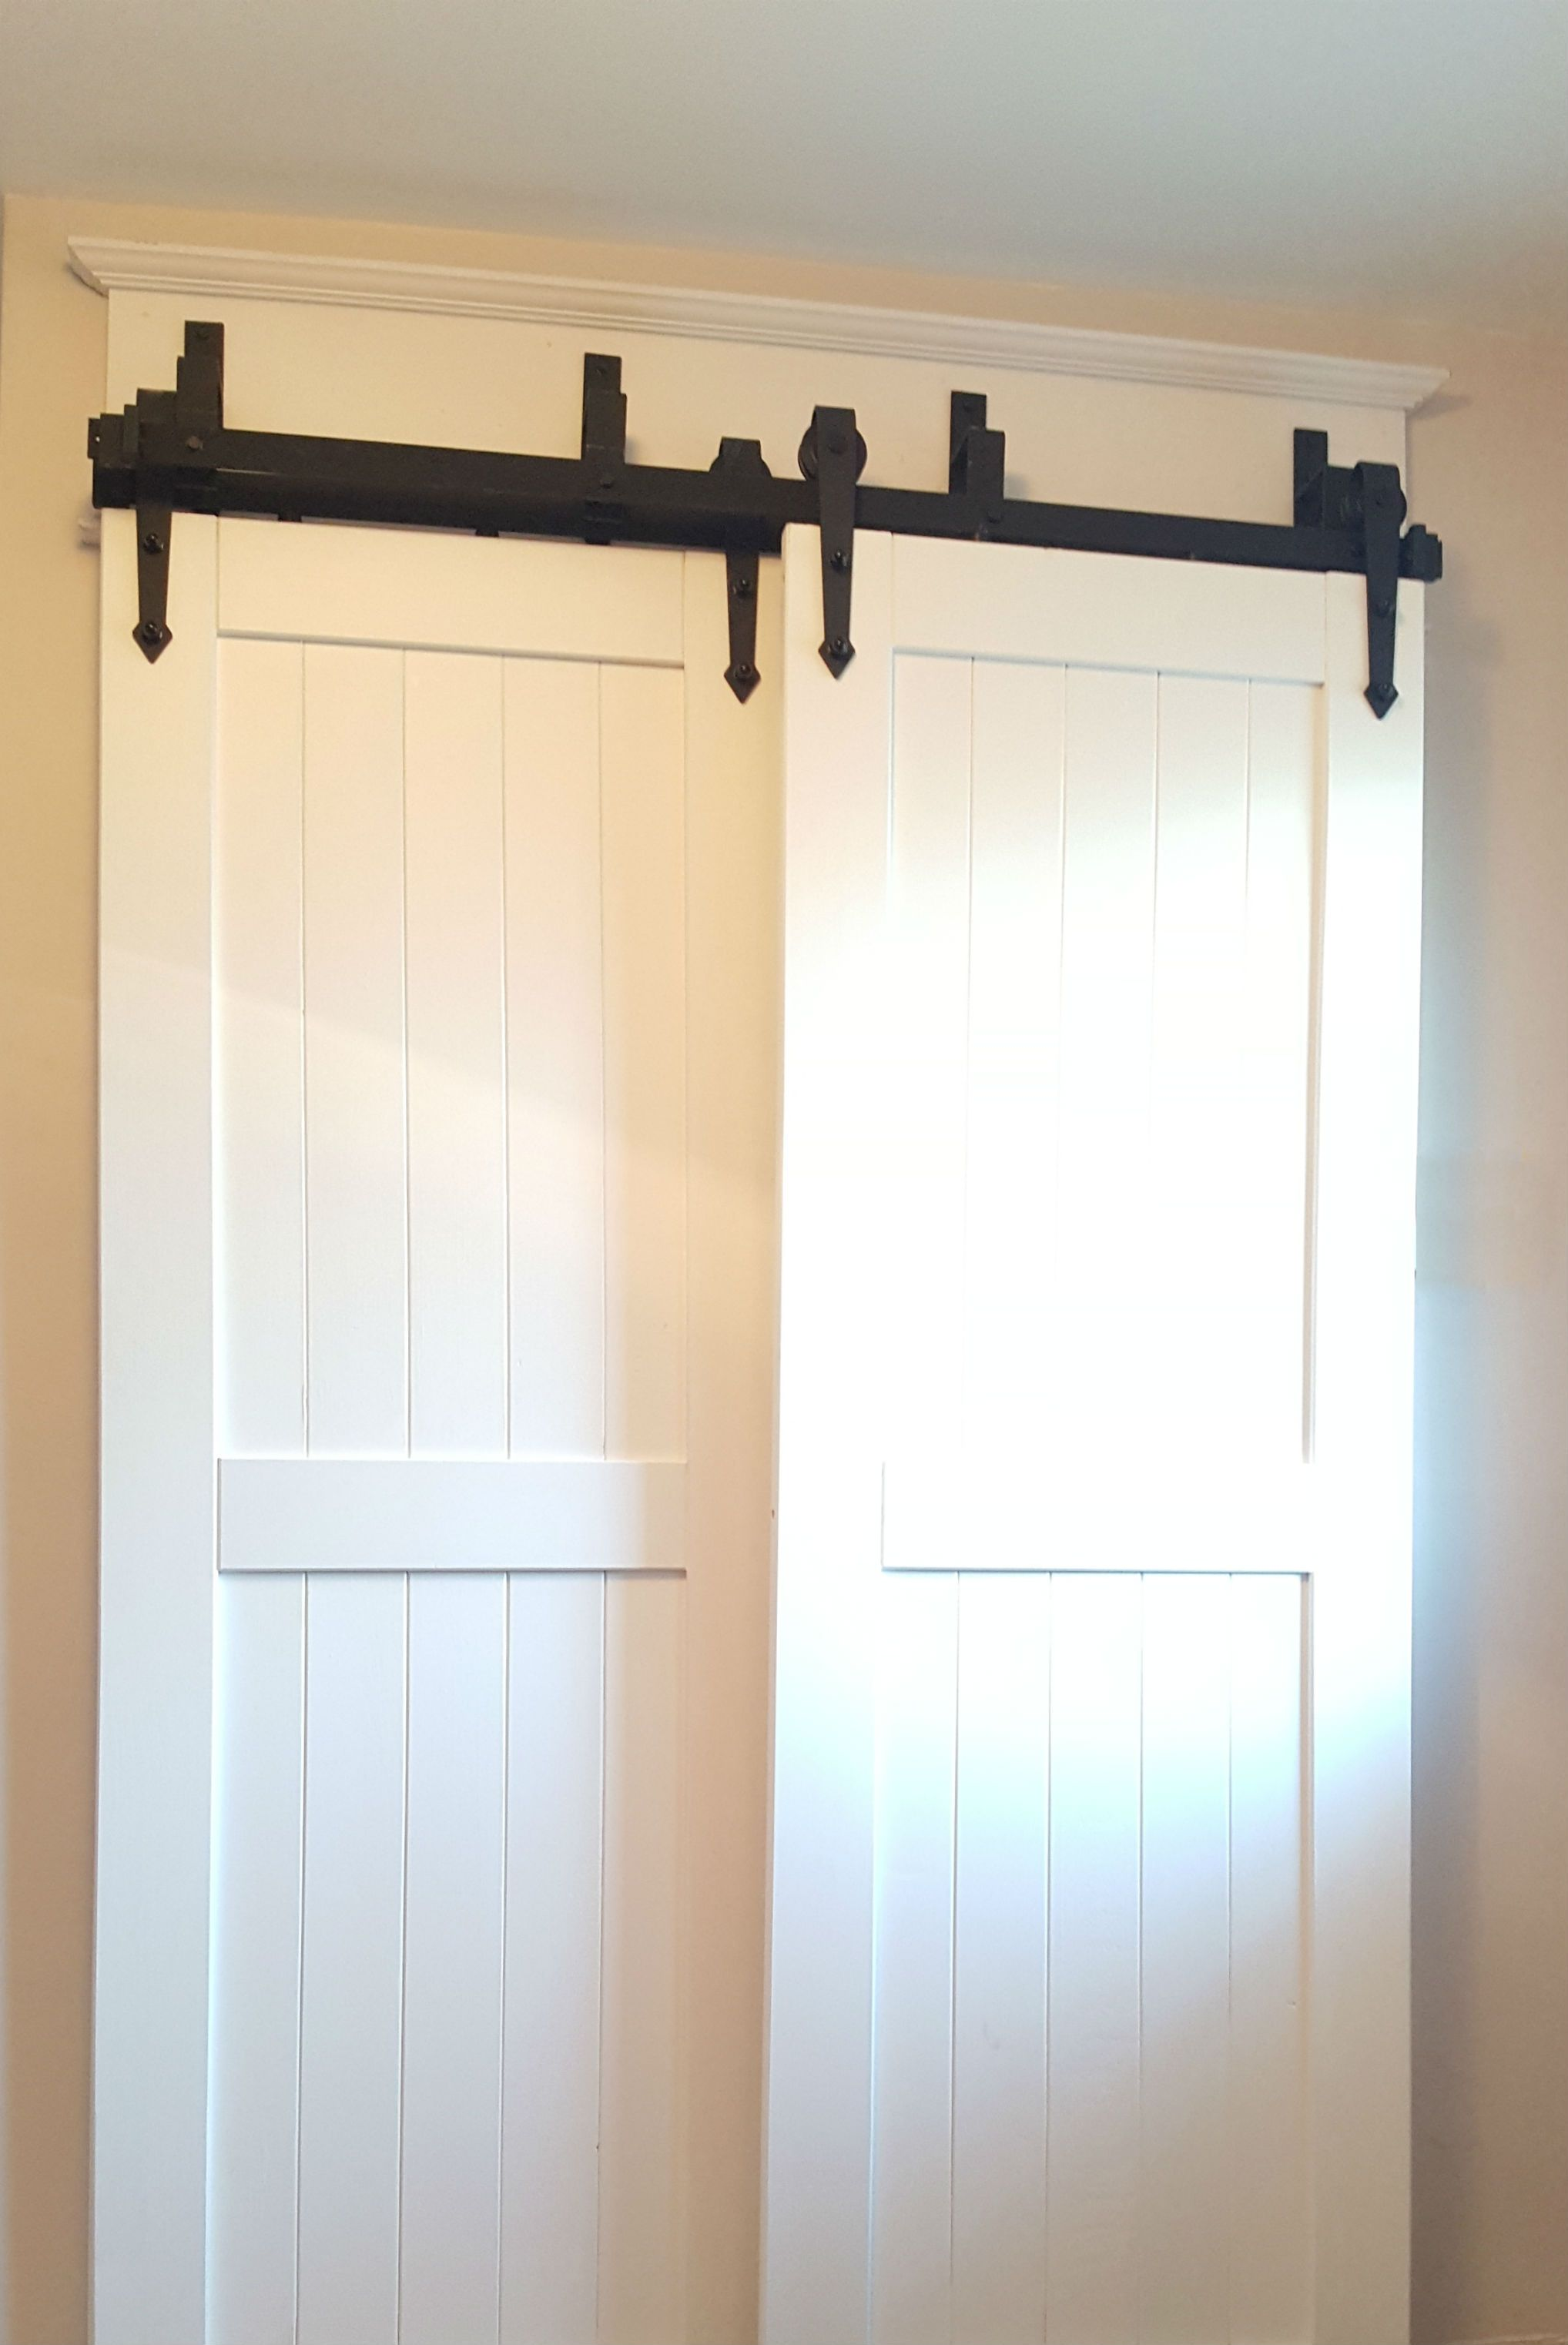 Bypass Barn Door Hardware Easy To Install Canada More